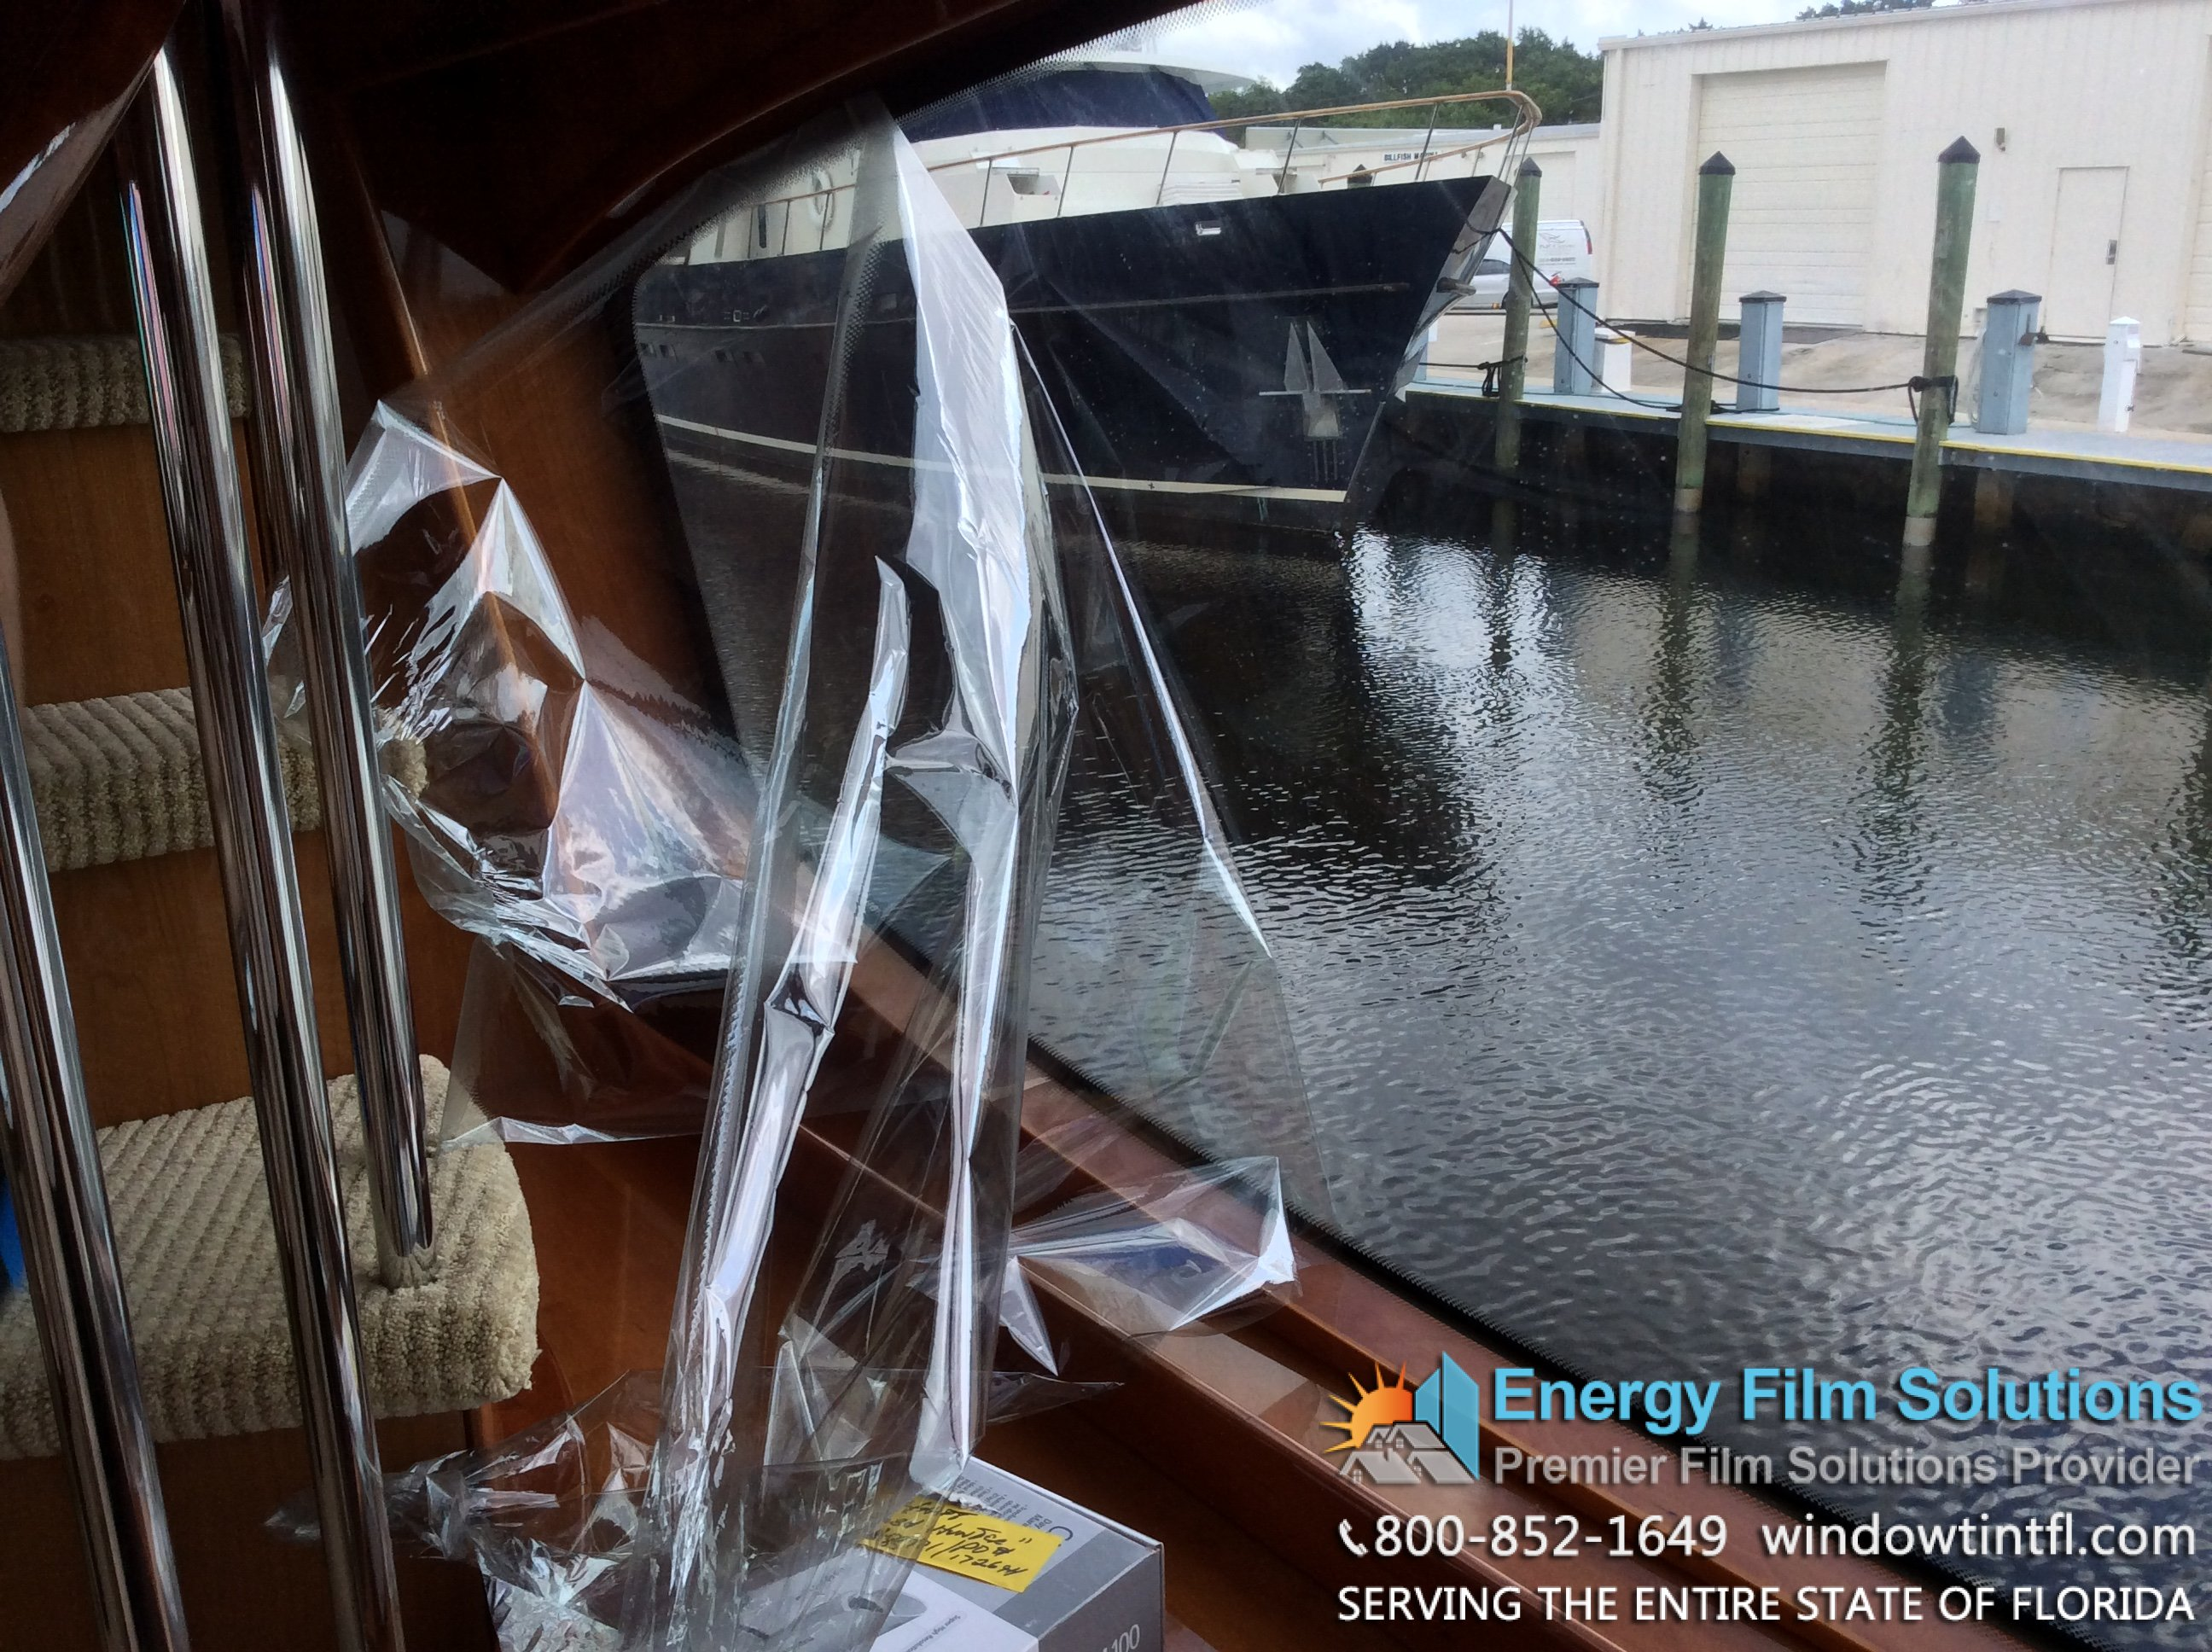 Vkool Marine Window Tint Yacht 962 Florida Window Tint Films